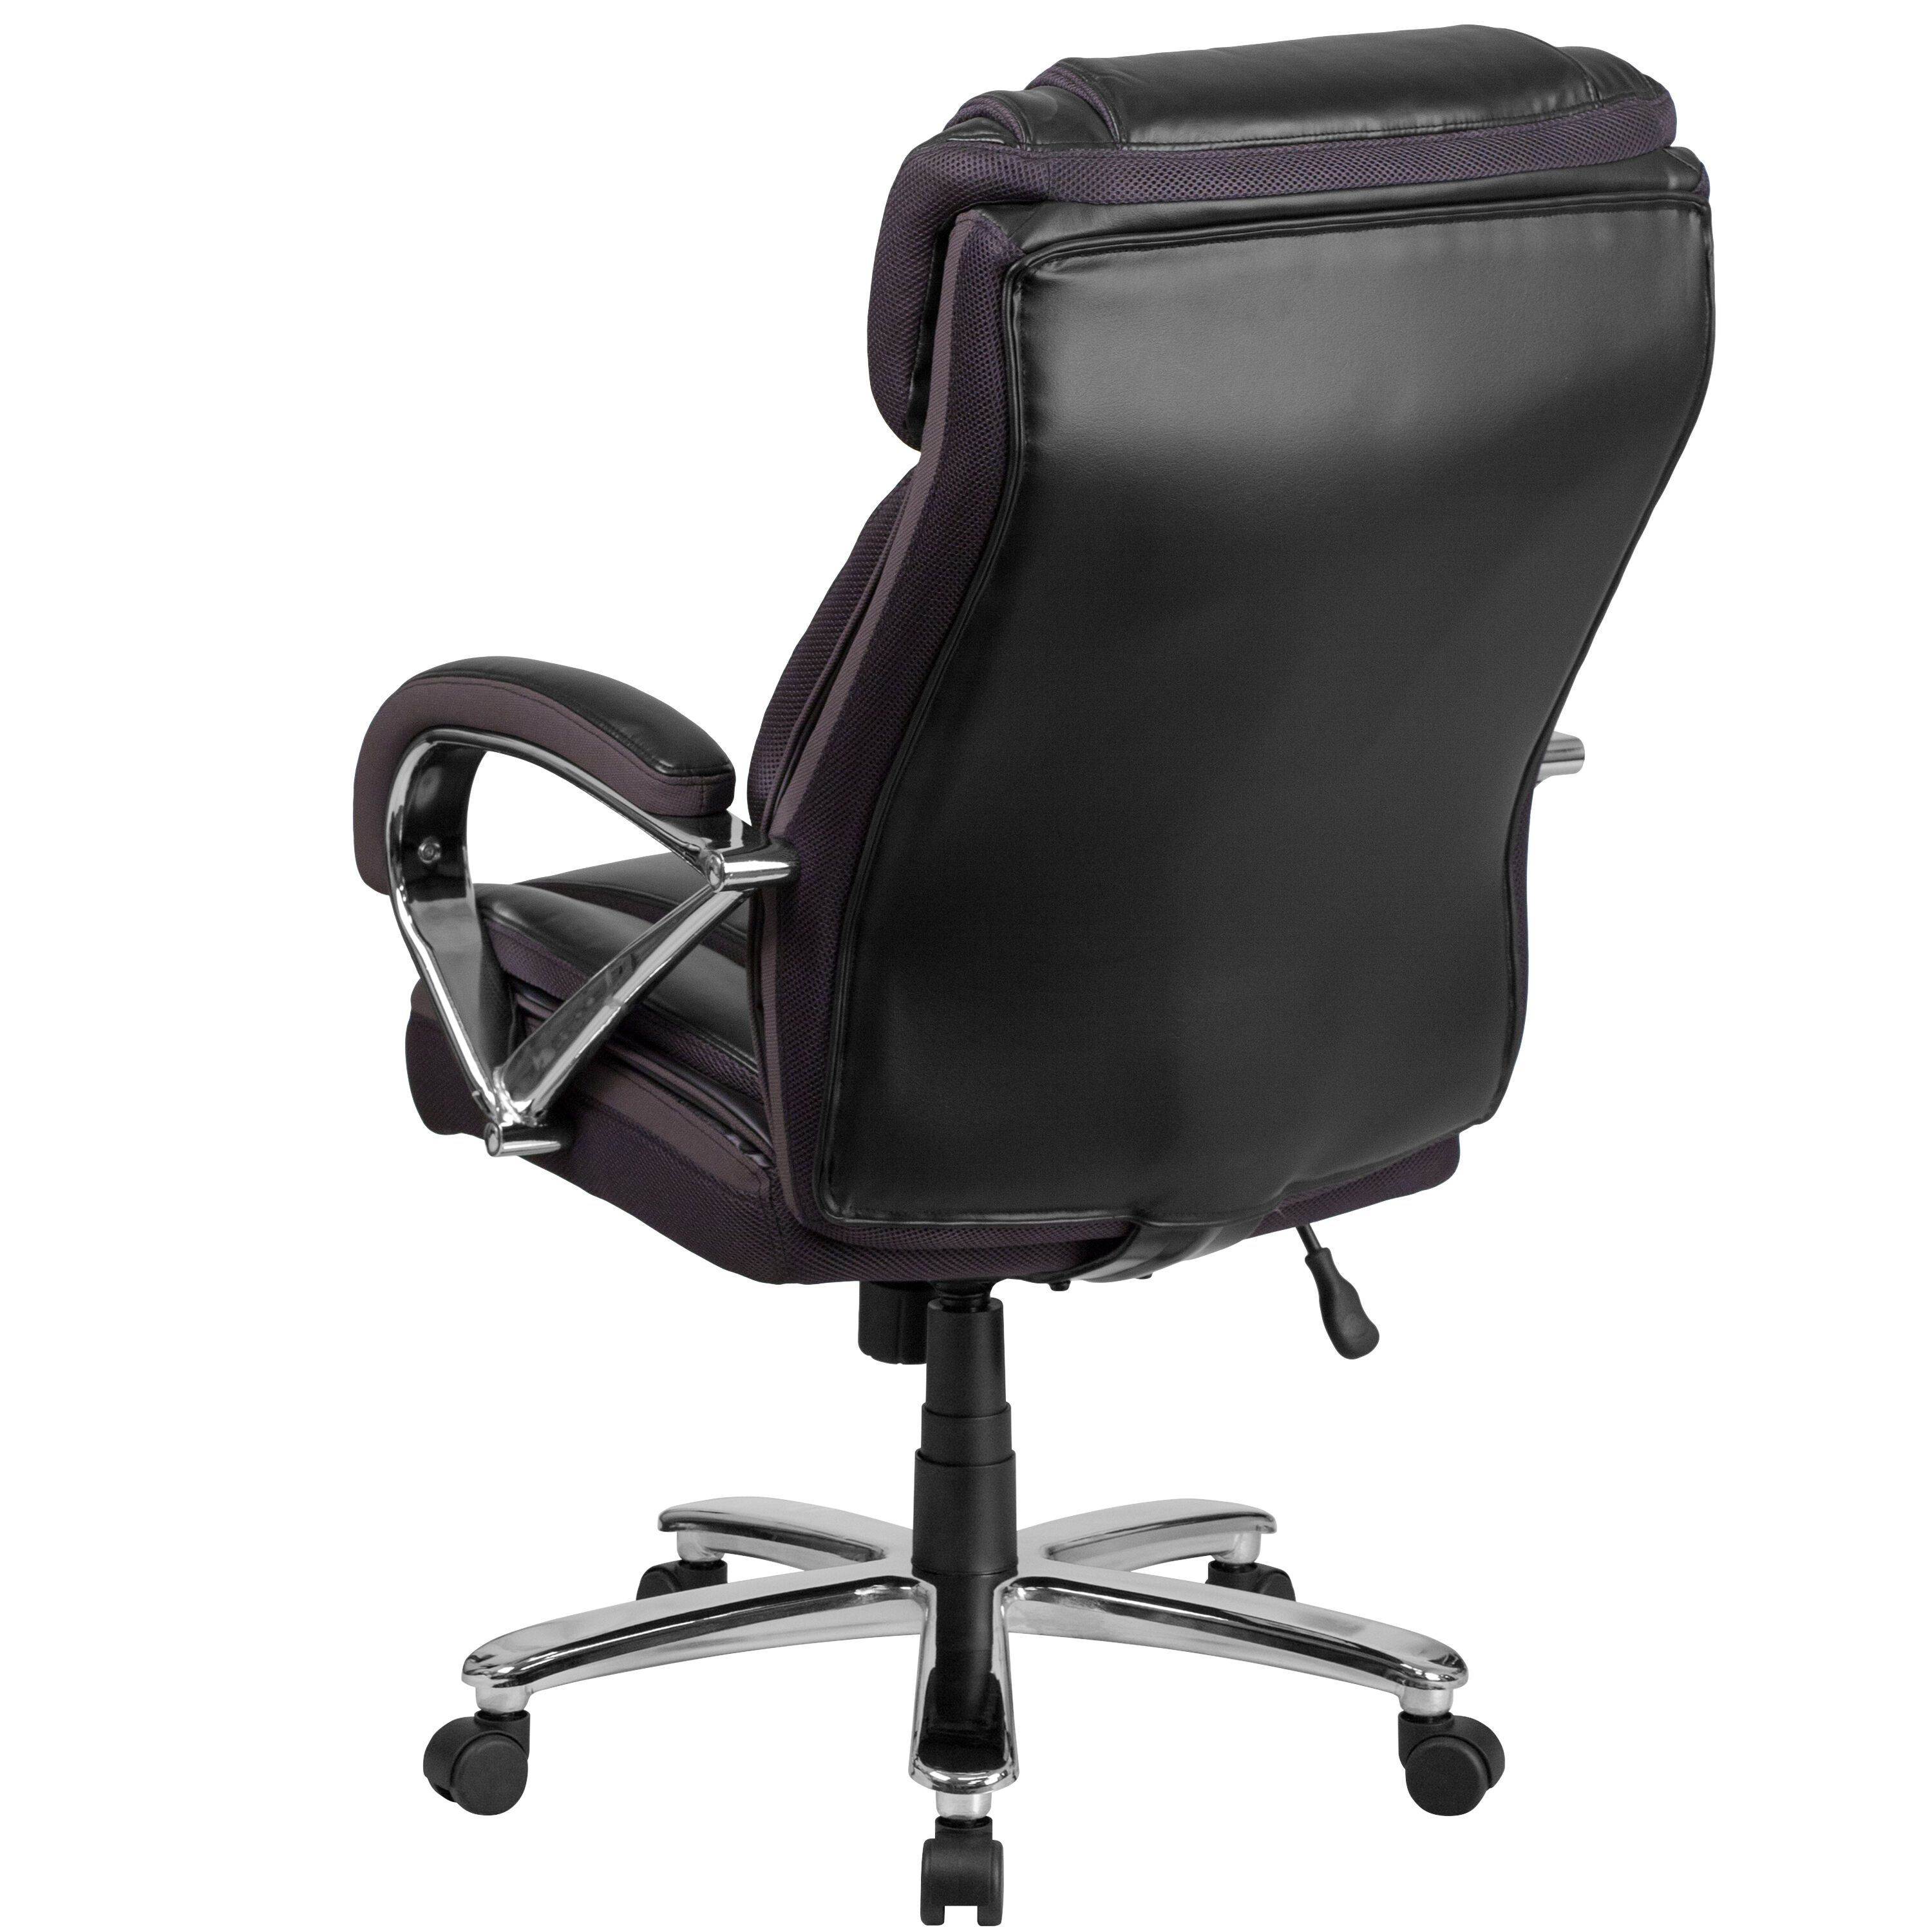 guy brown office chairs bouncy chair for baby black 500lb high back go 2092m 1 bk gg bizchair com